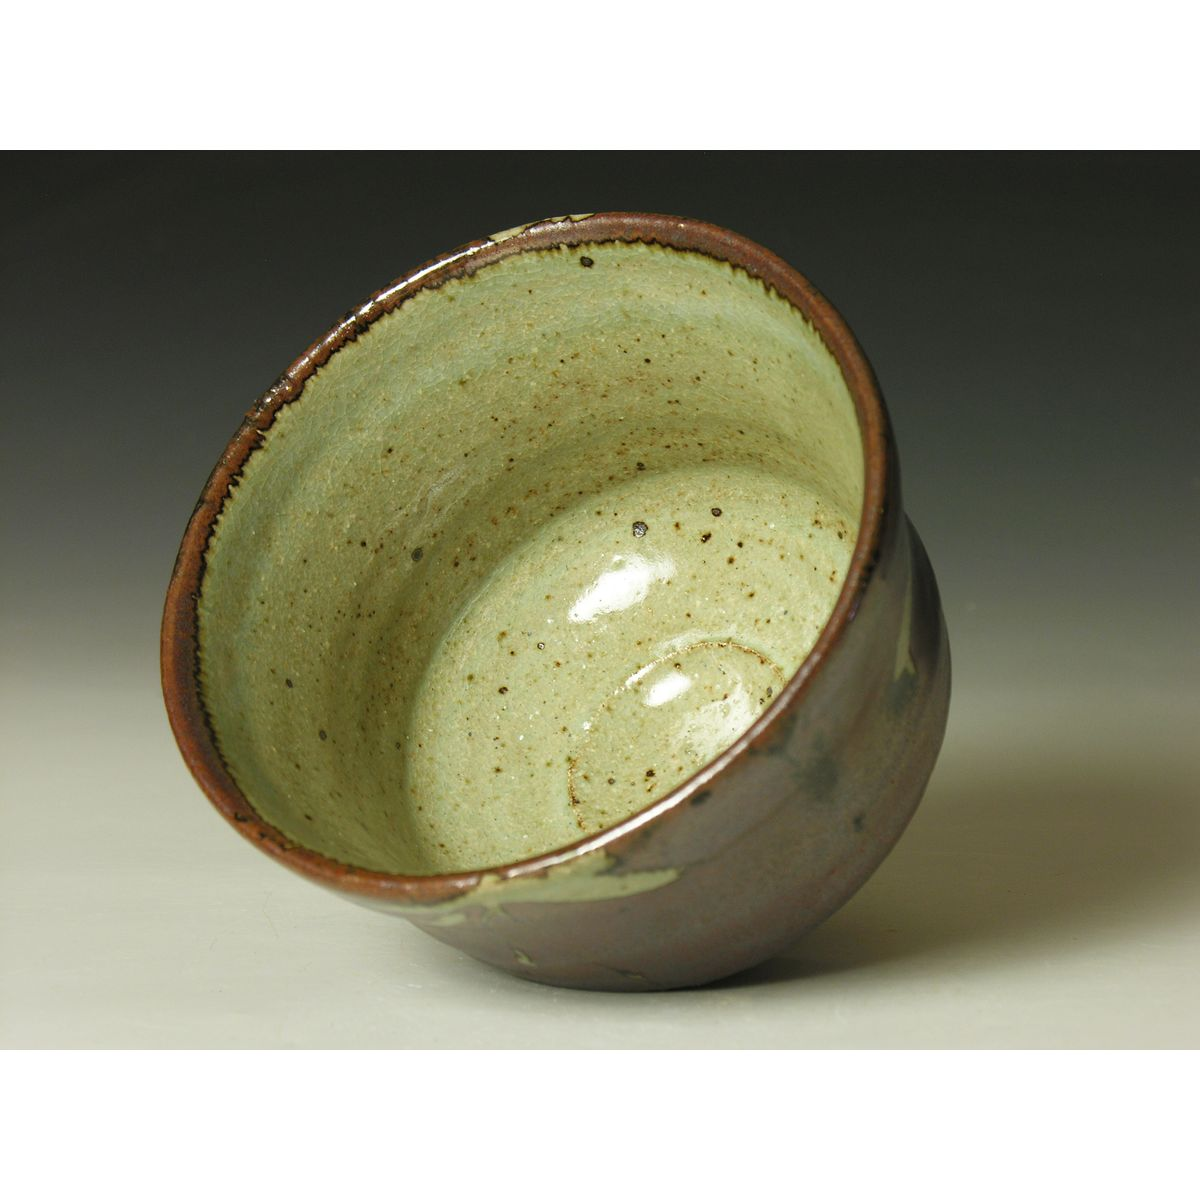 Pr410 chawan with wax resist decoration phil rogers pottery for Decoration wax